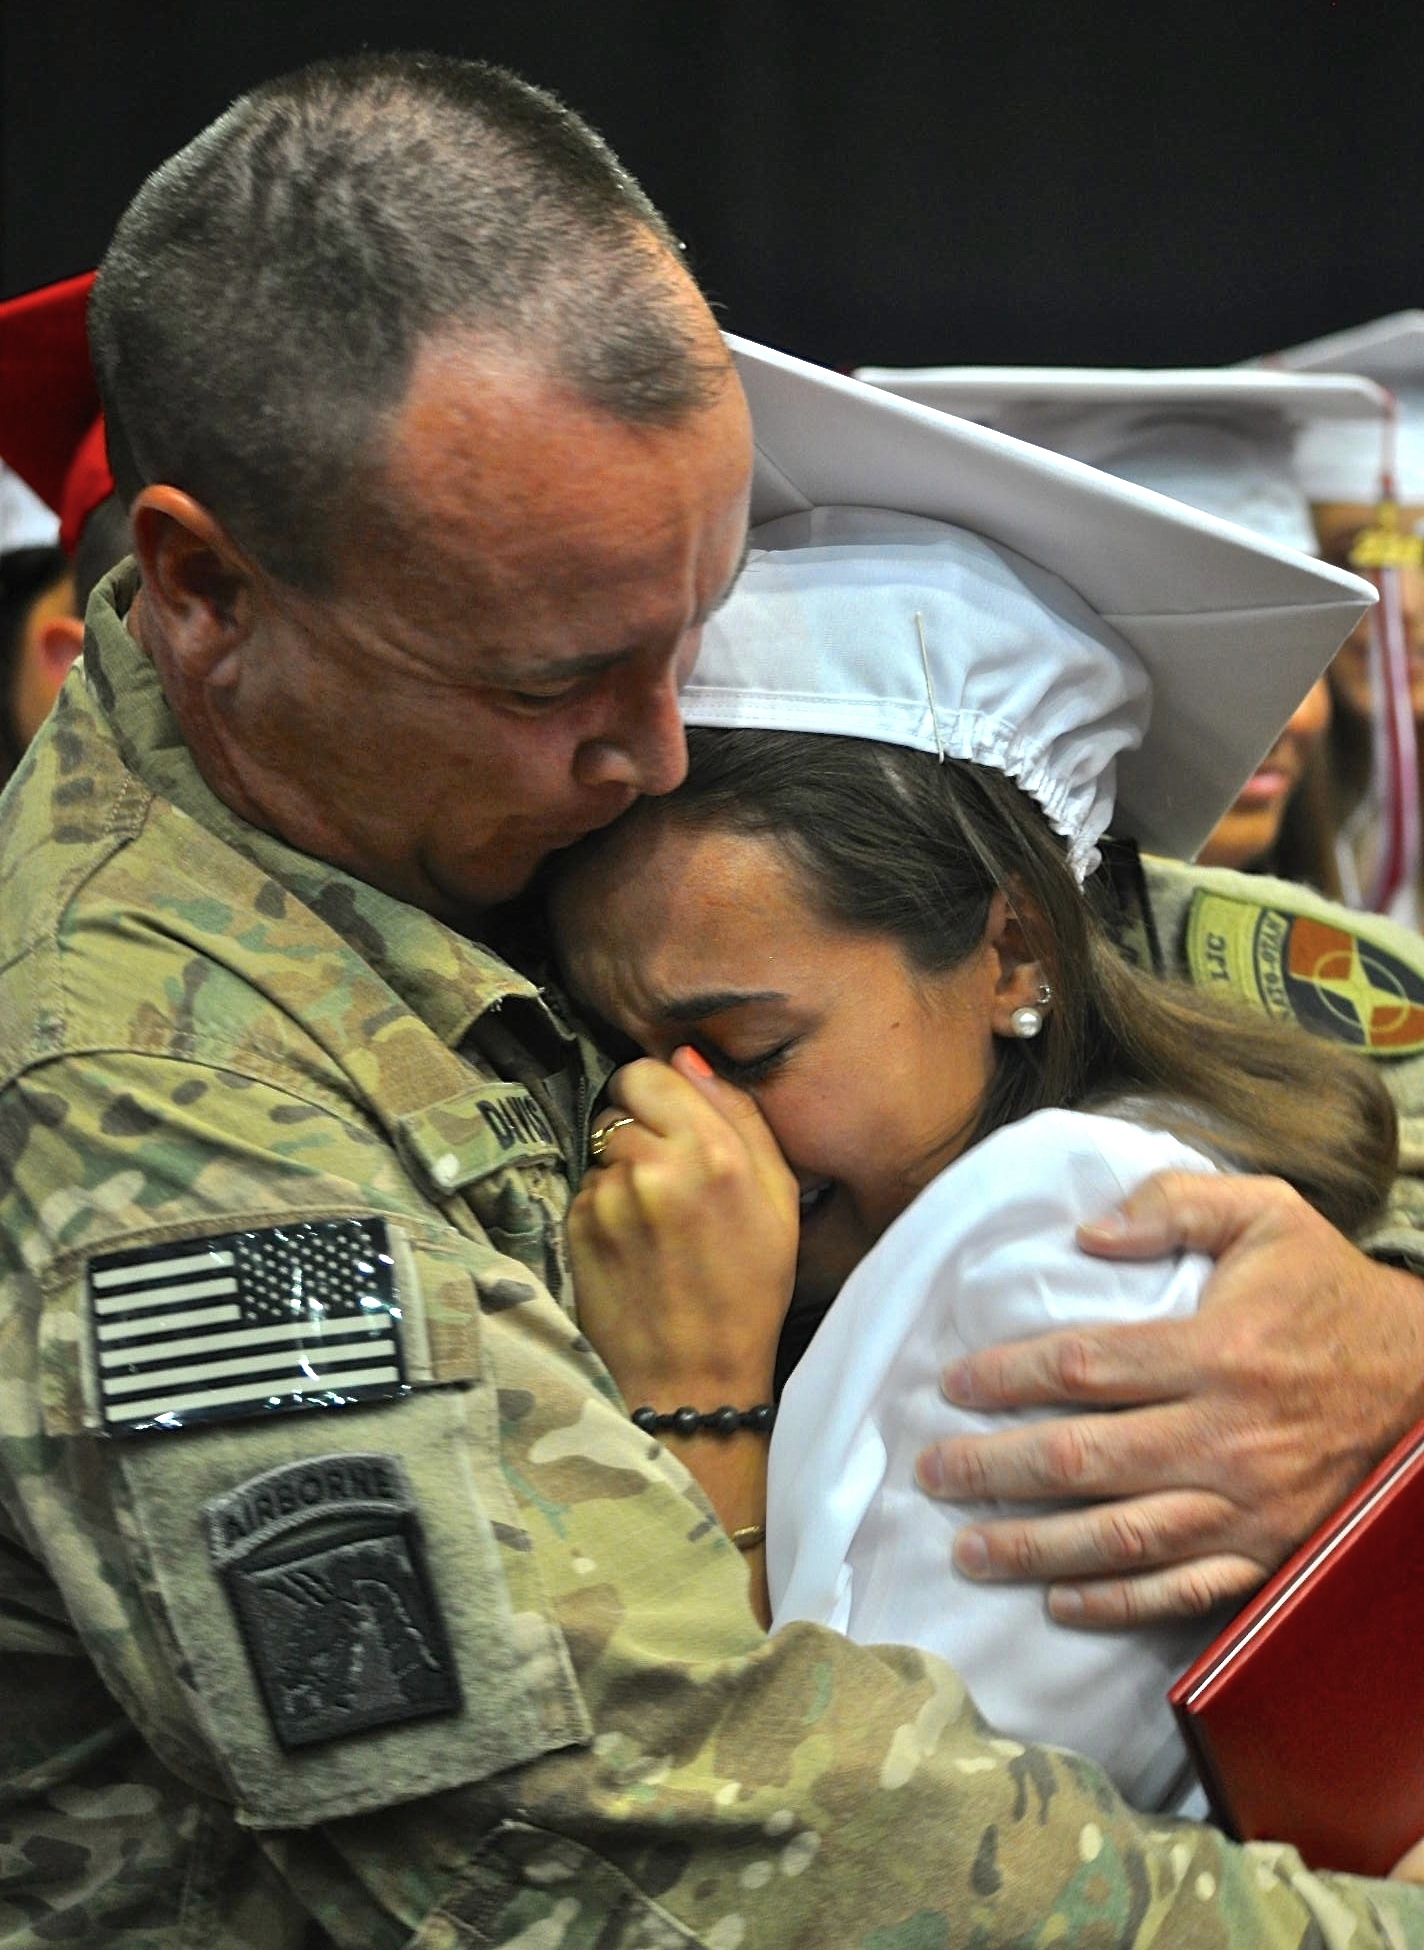 ARMY DAD & DAUGHTER REUNITE : This year's money shot shows a teen hugging her Army dad after he showed up at her high school graduation ceremony while she thought he was still stationed overseas. Newsday assigned me to cover this reunion and I made sure I found a good vantage point to capture this moment. Money!